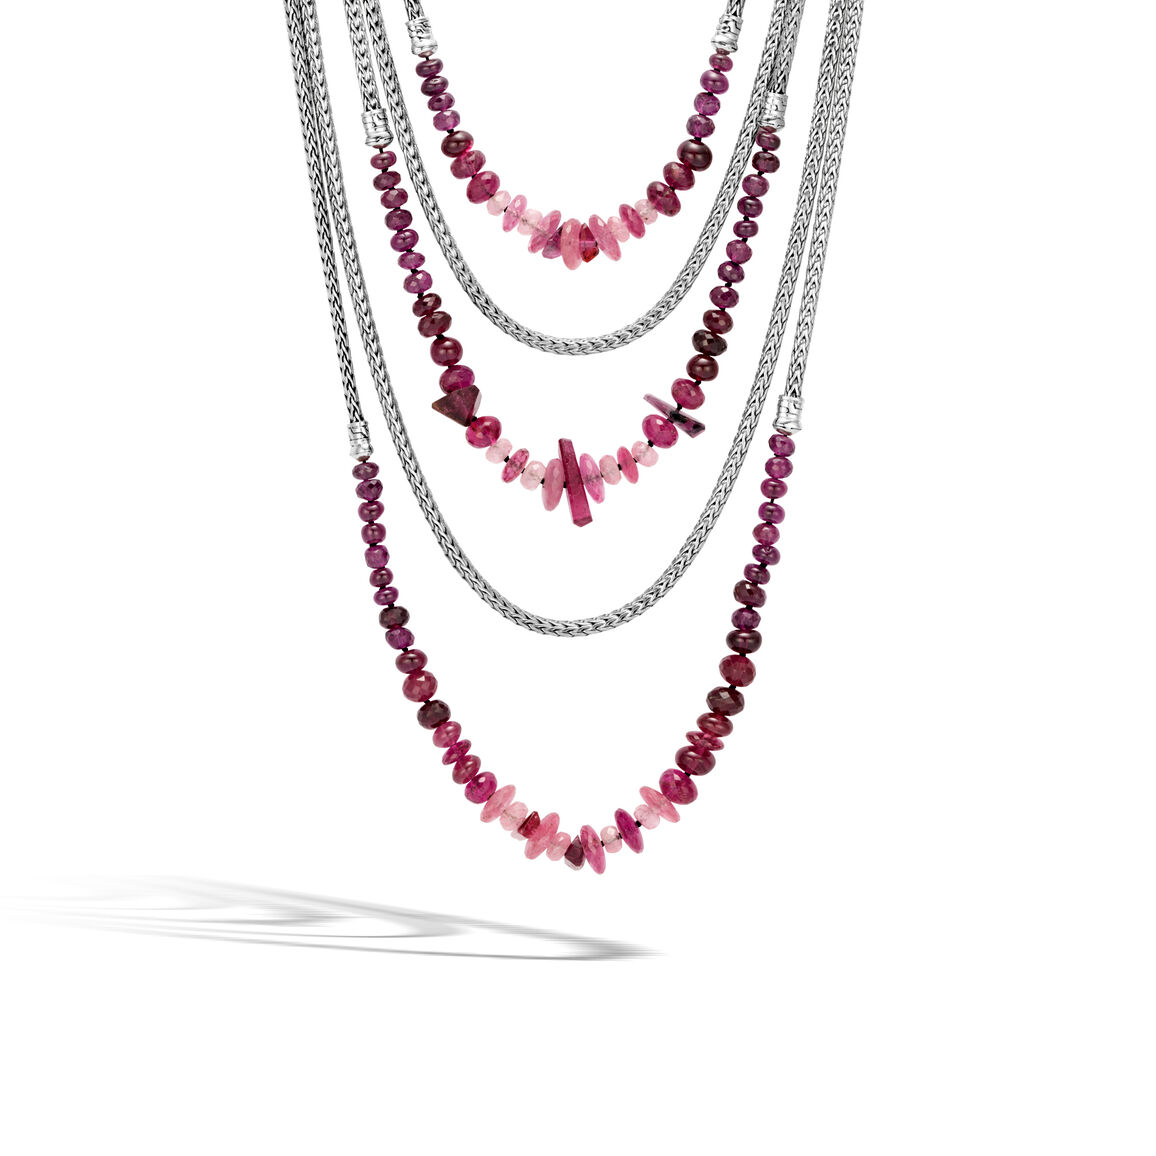 Asli Classic Chain Link Bib Necklace in Silver with Gemstone